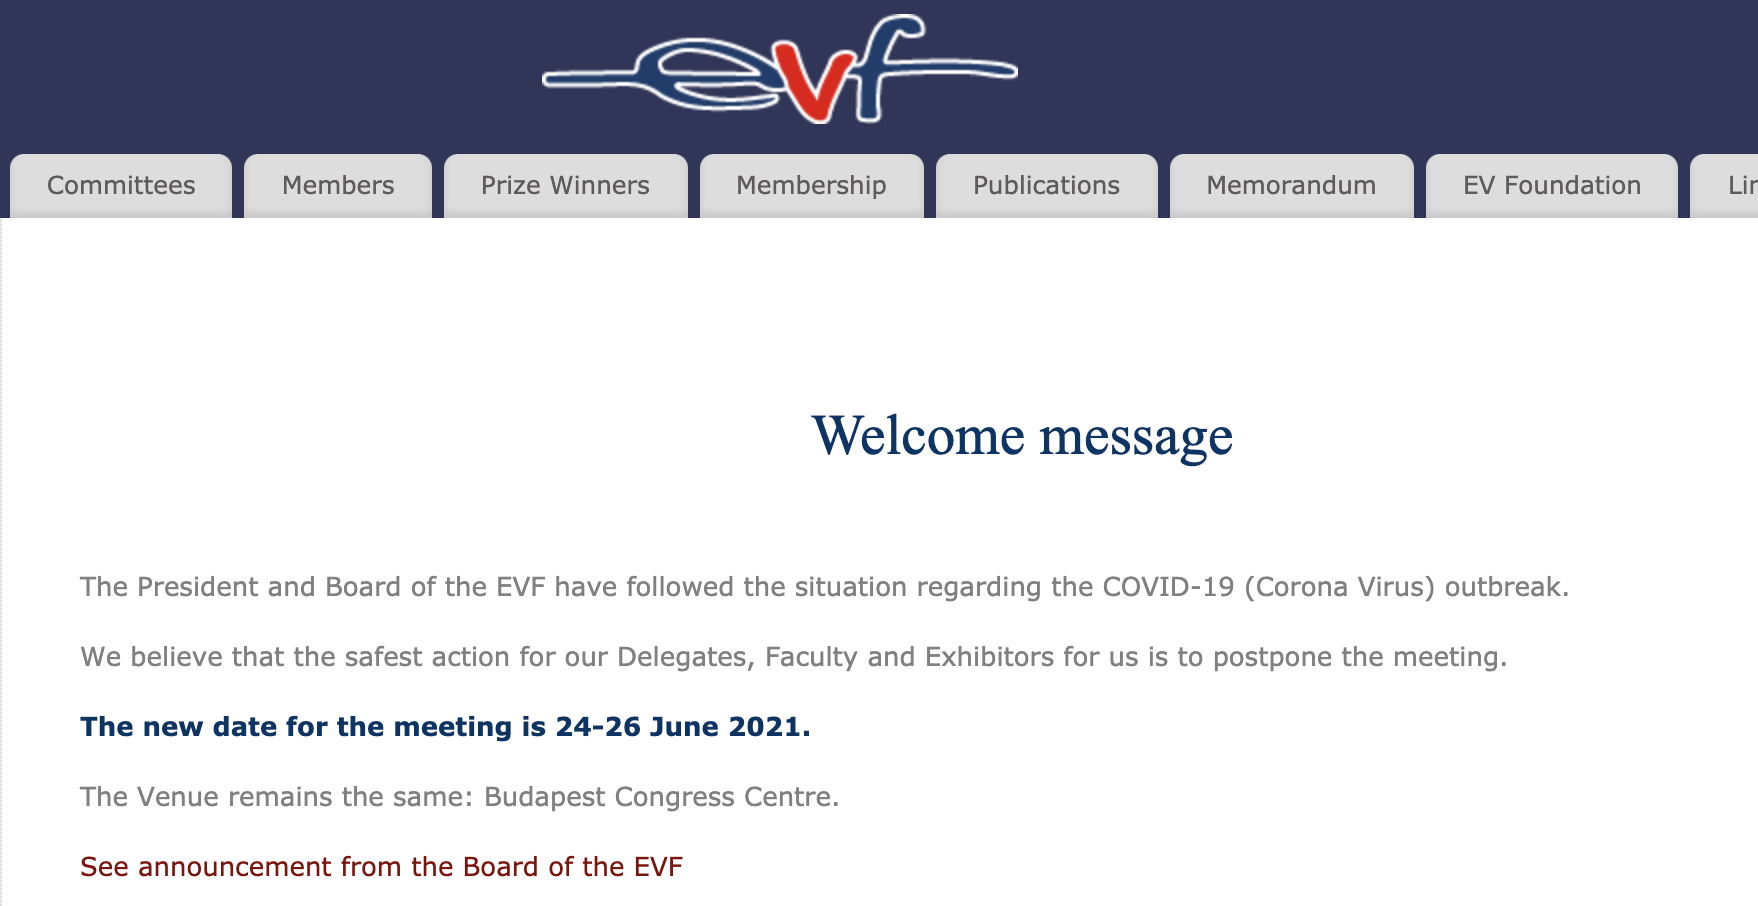 EVF Annual Meeting (European Venous Forum)